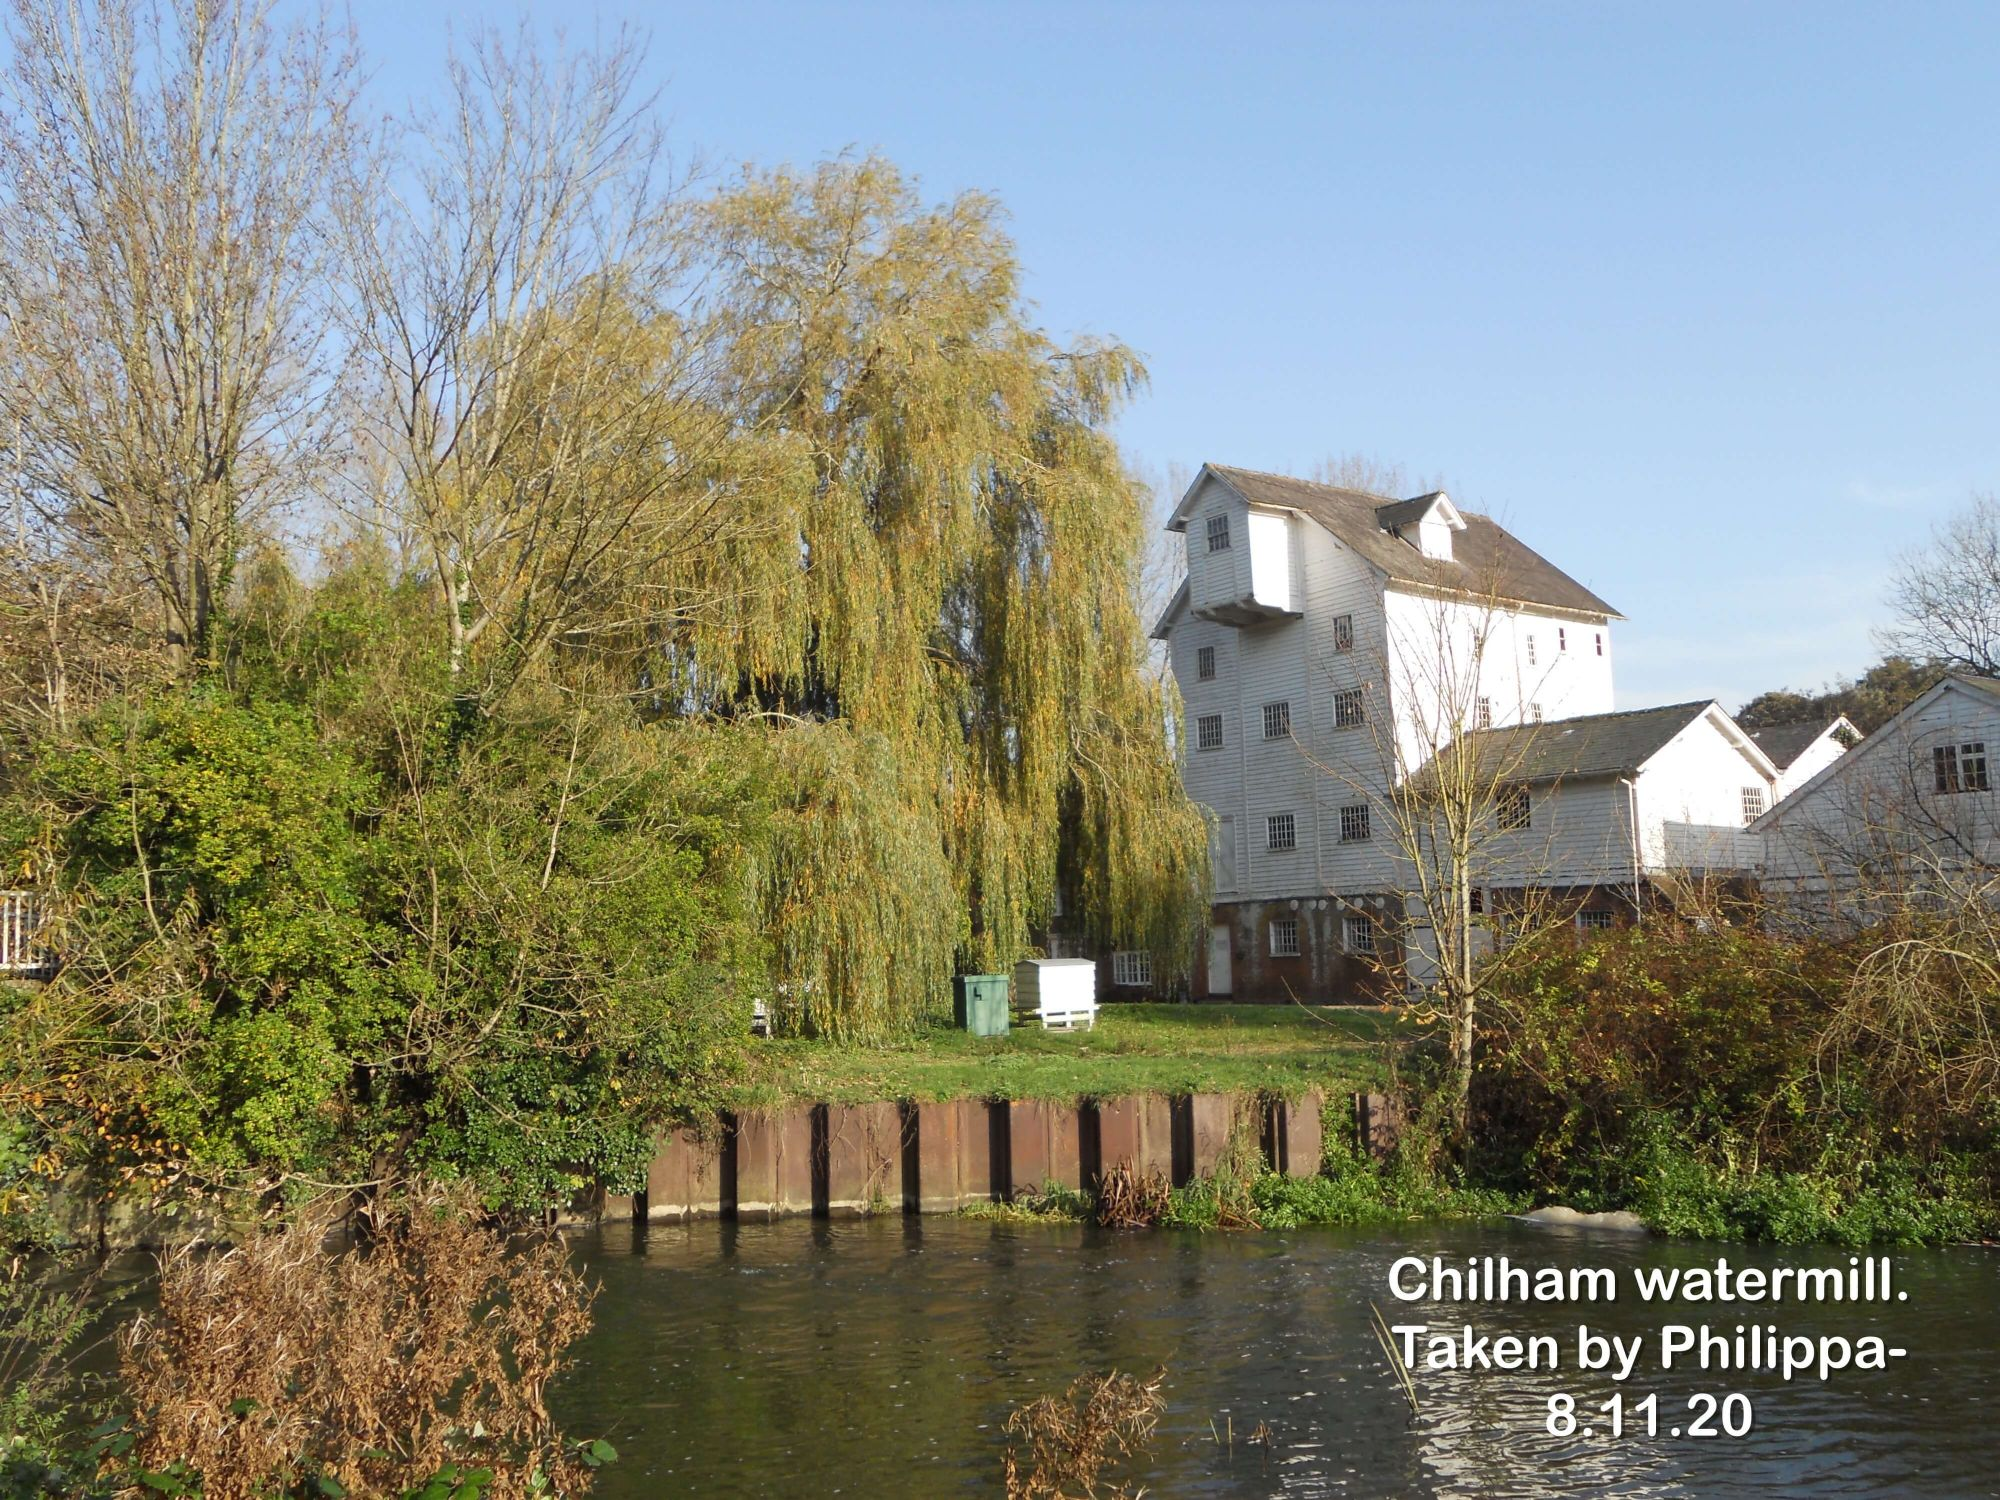 Chilham watermill.